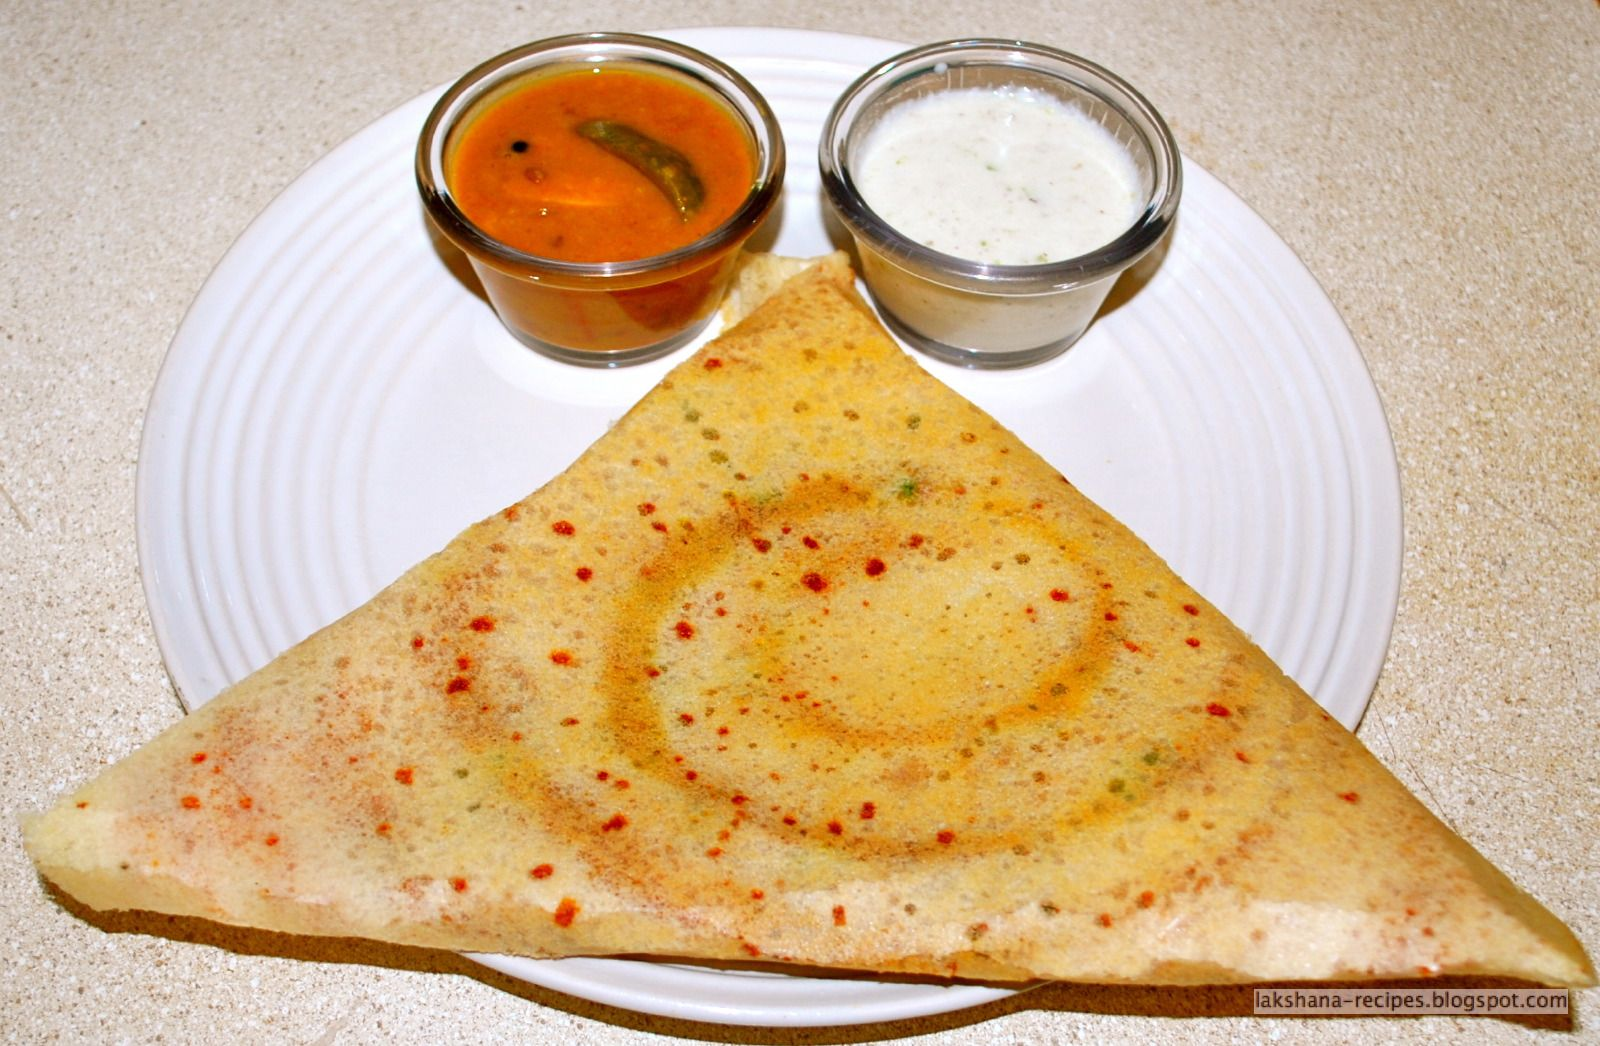 Masala dosa dosa with a filling of potatoes and masala this page masala dosa dosa with a filling of potatoes and masala this page has a forumfinder Images